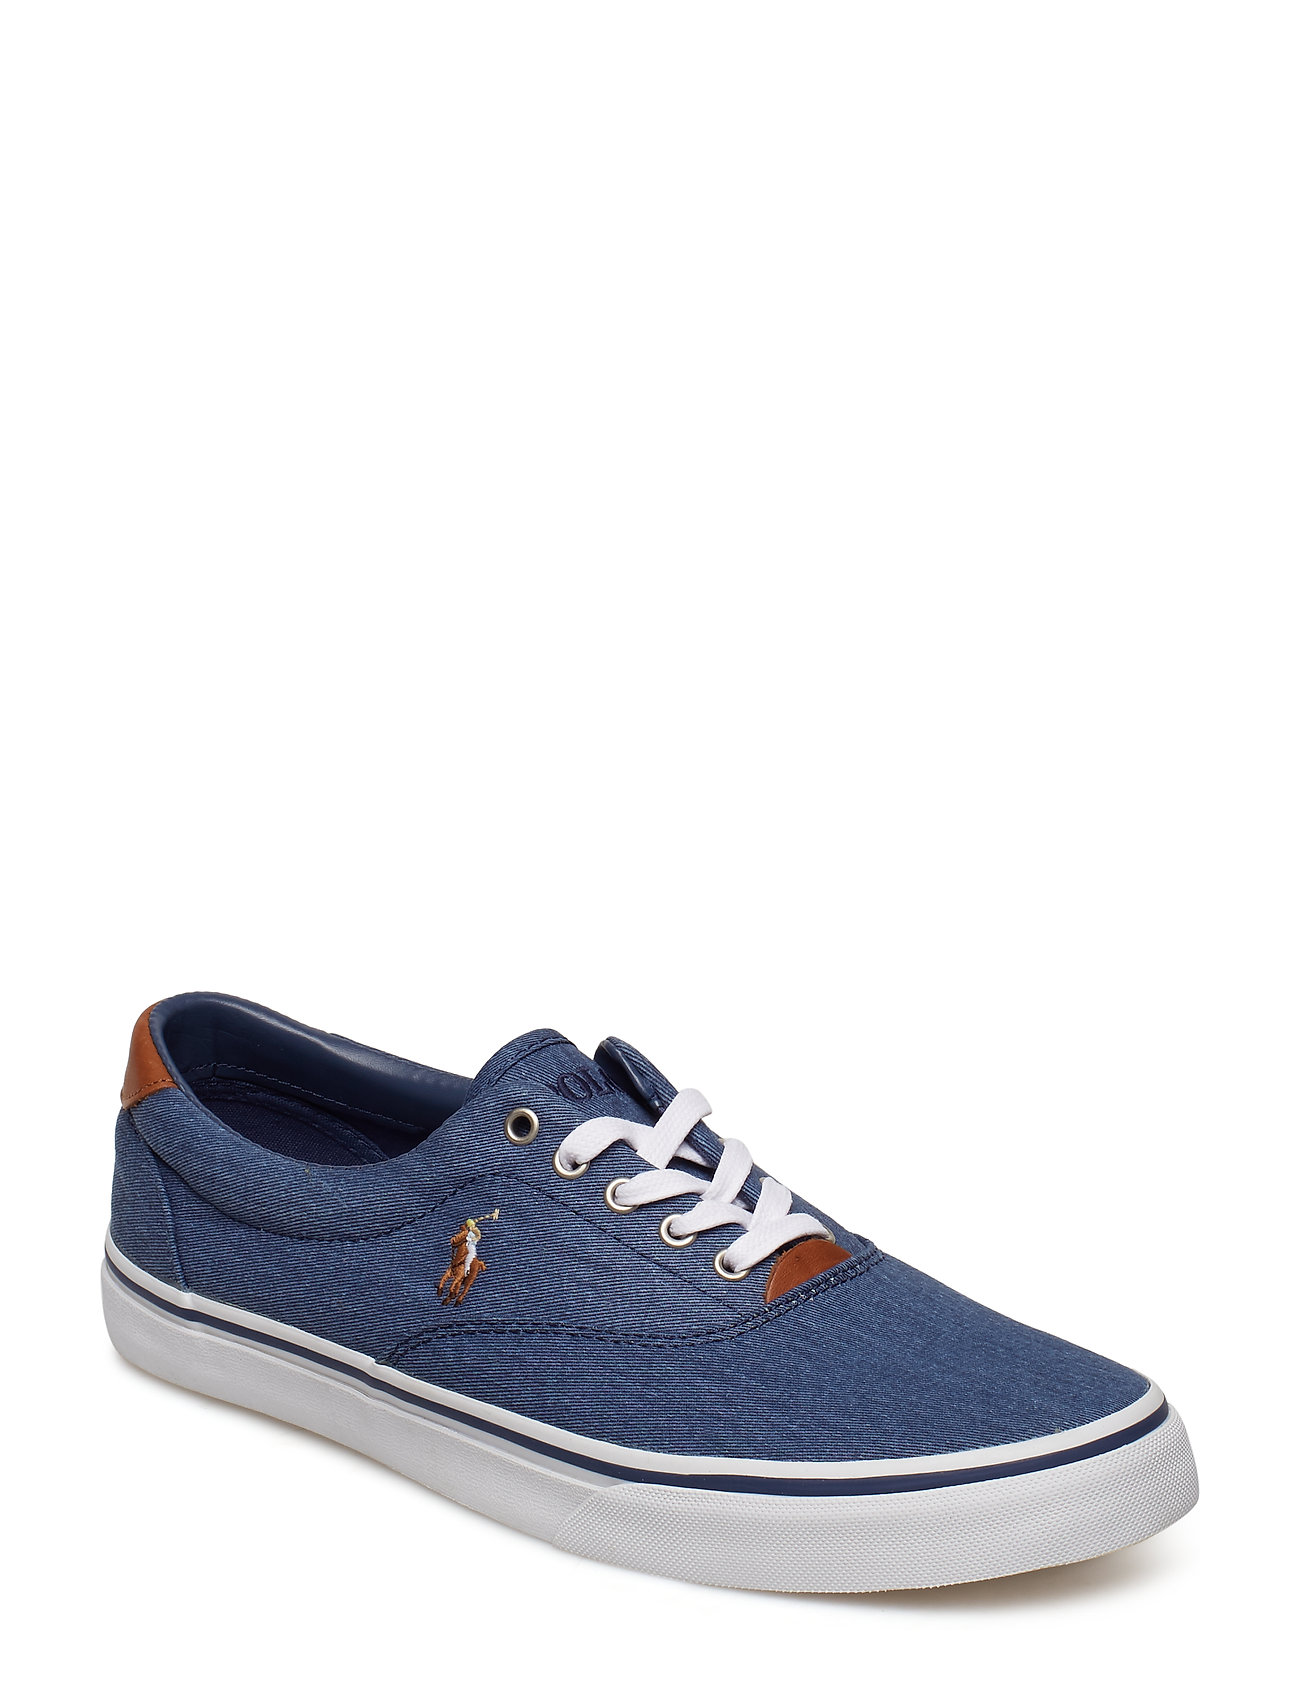 Polo Ralph Lauren Thorton Washed Twill Sneaker